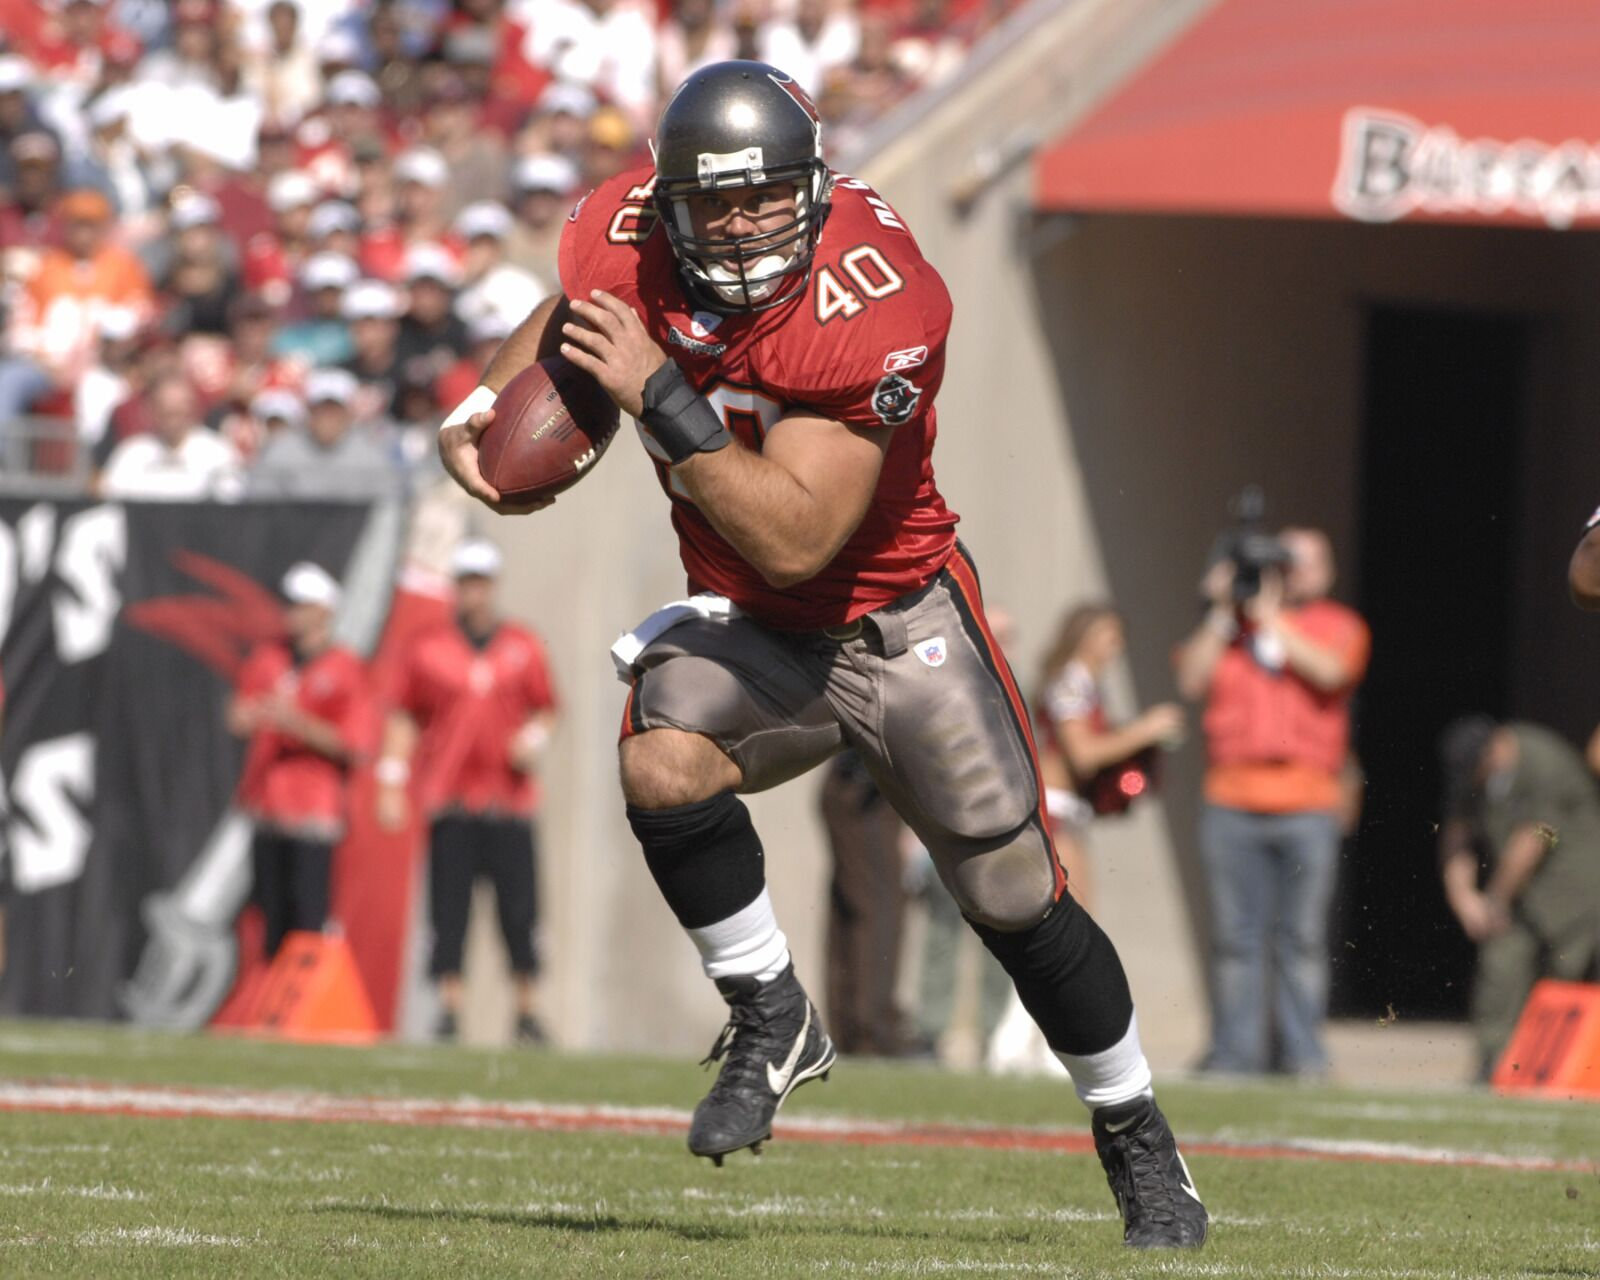 Tampa Bay Buccaneers: The difficult legacy of running back Mike Alstott